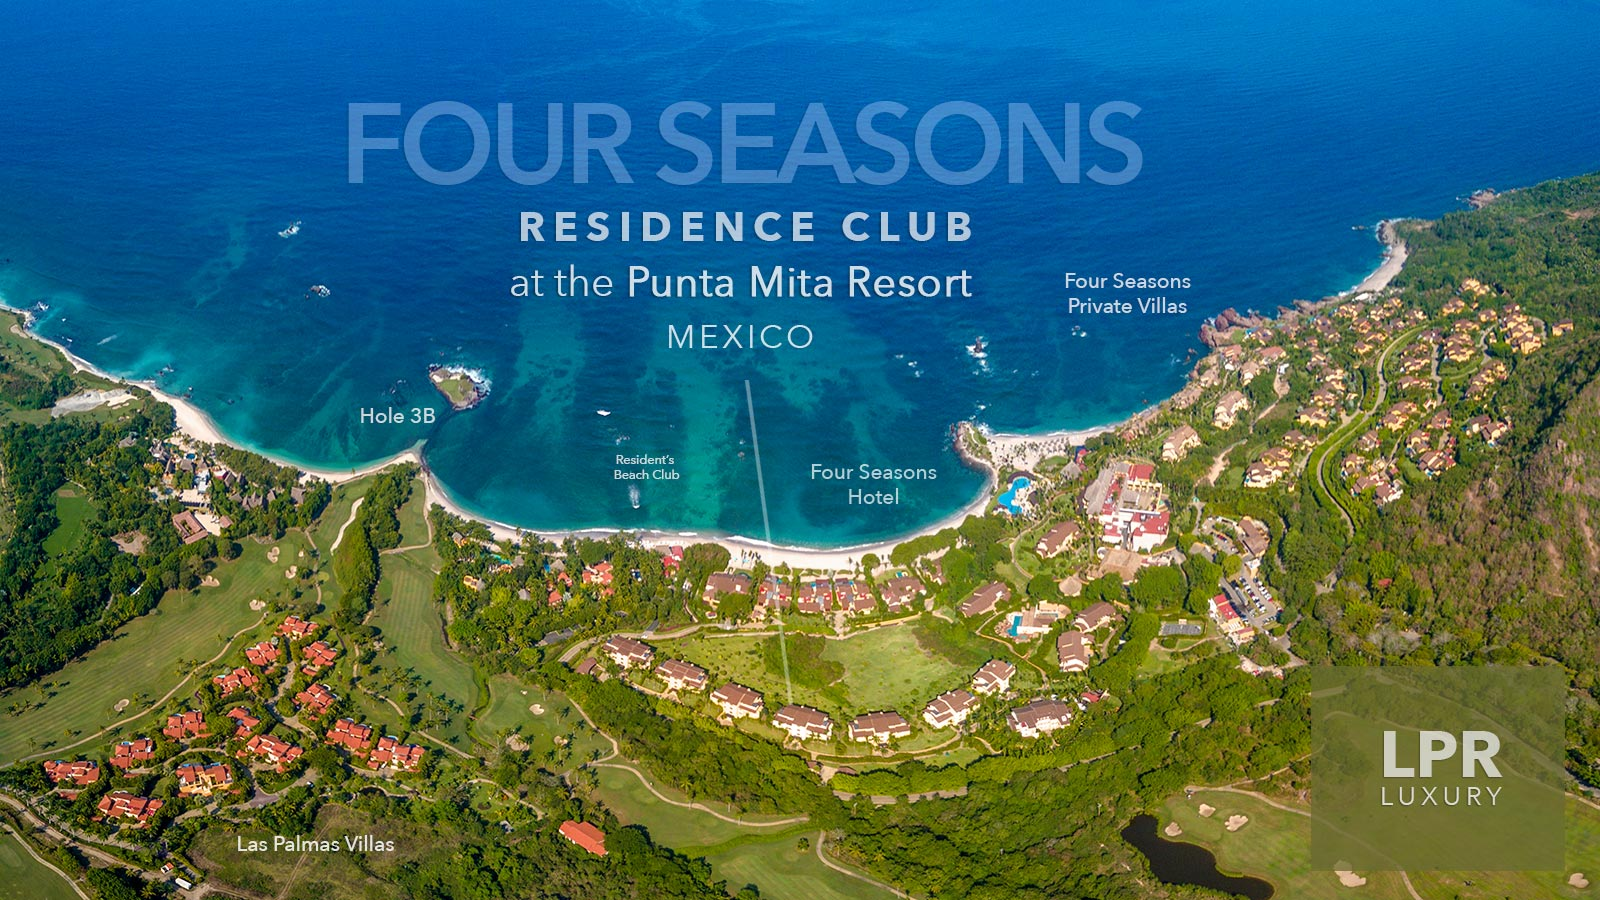 Four Seasons Residence Club at the Punta Mita Resort, Riviera Nayarit, Mexico